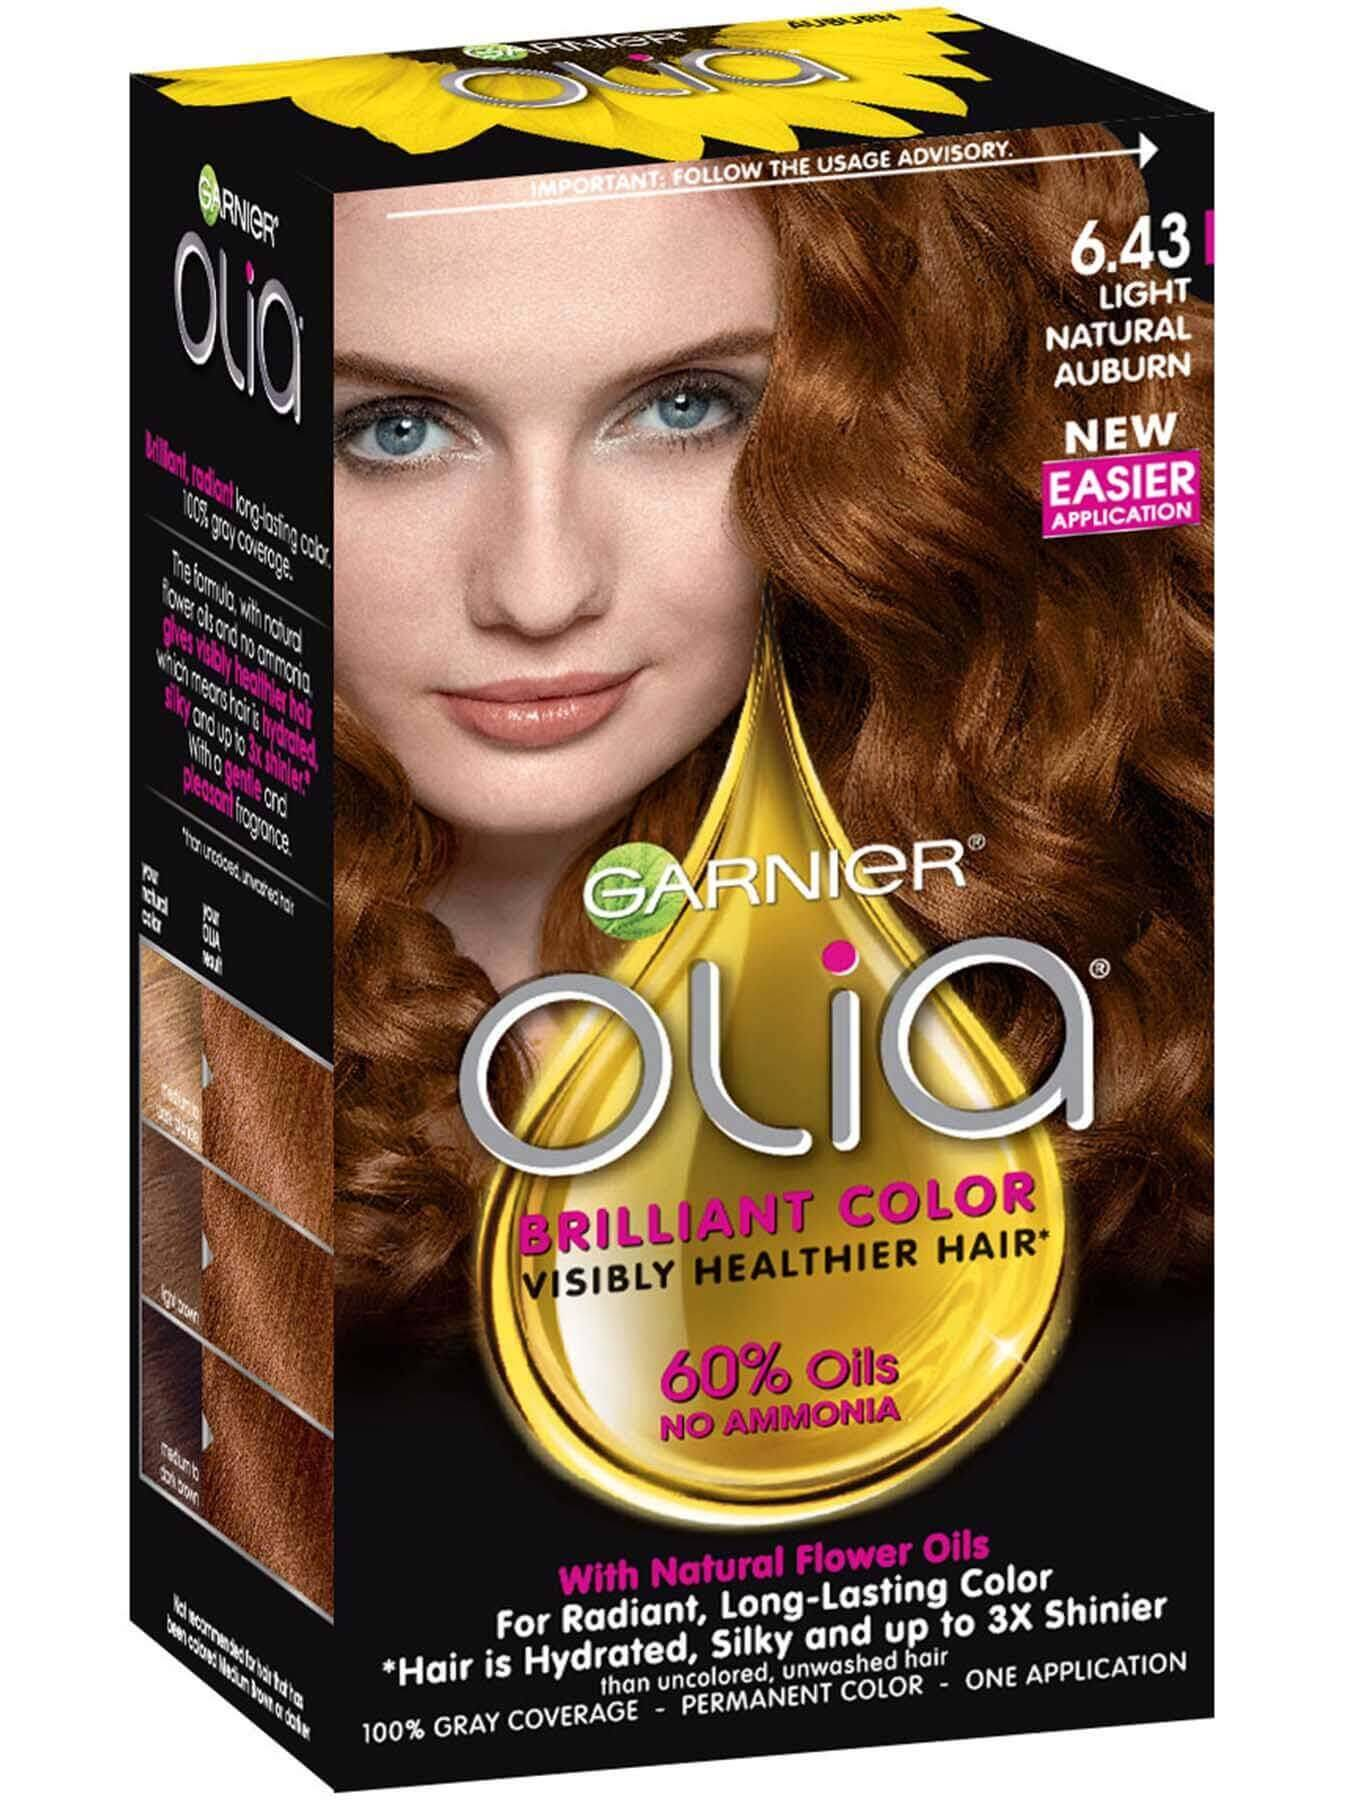 Olia Ammonia Free Light Natural Auburn Hair Color Garnier